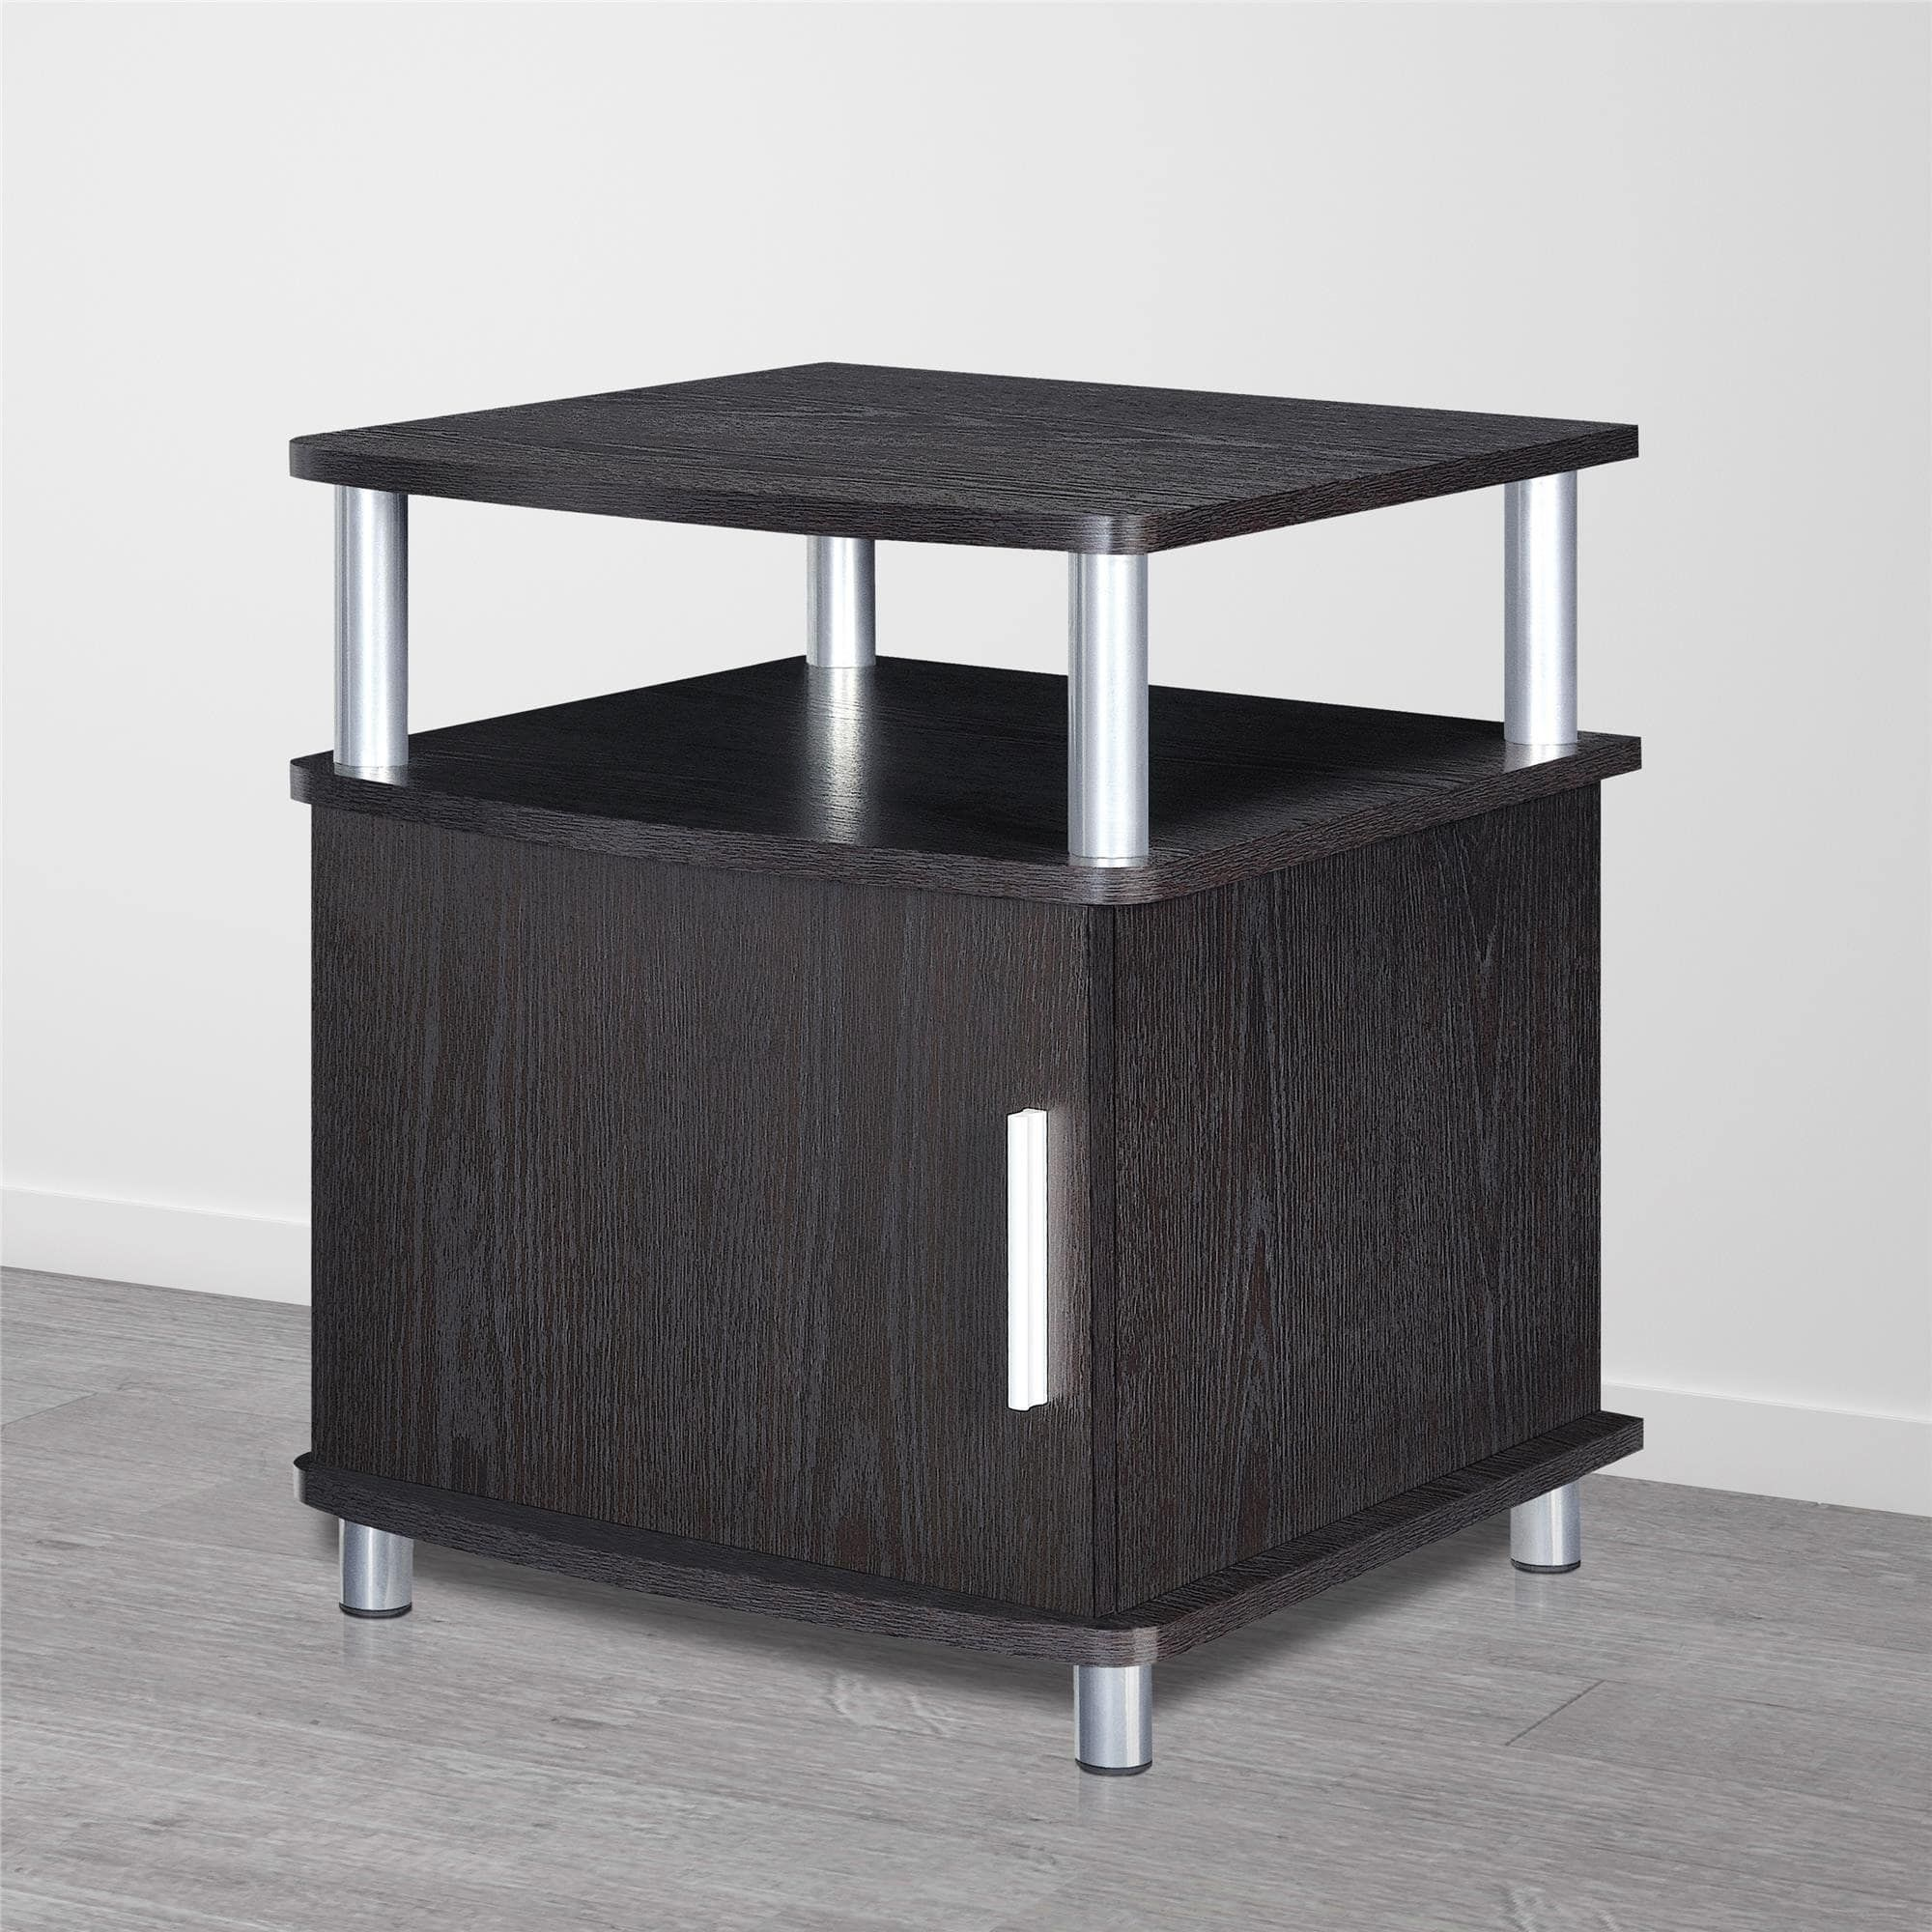 Porch & Den Wicker Park Leavitt Storage End Table Espresso Brown